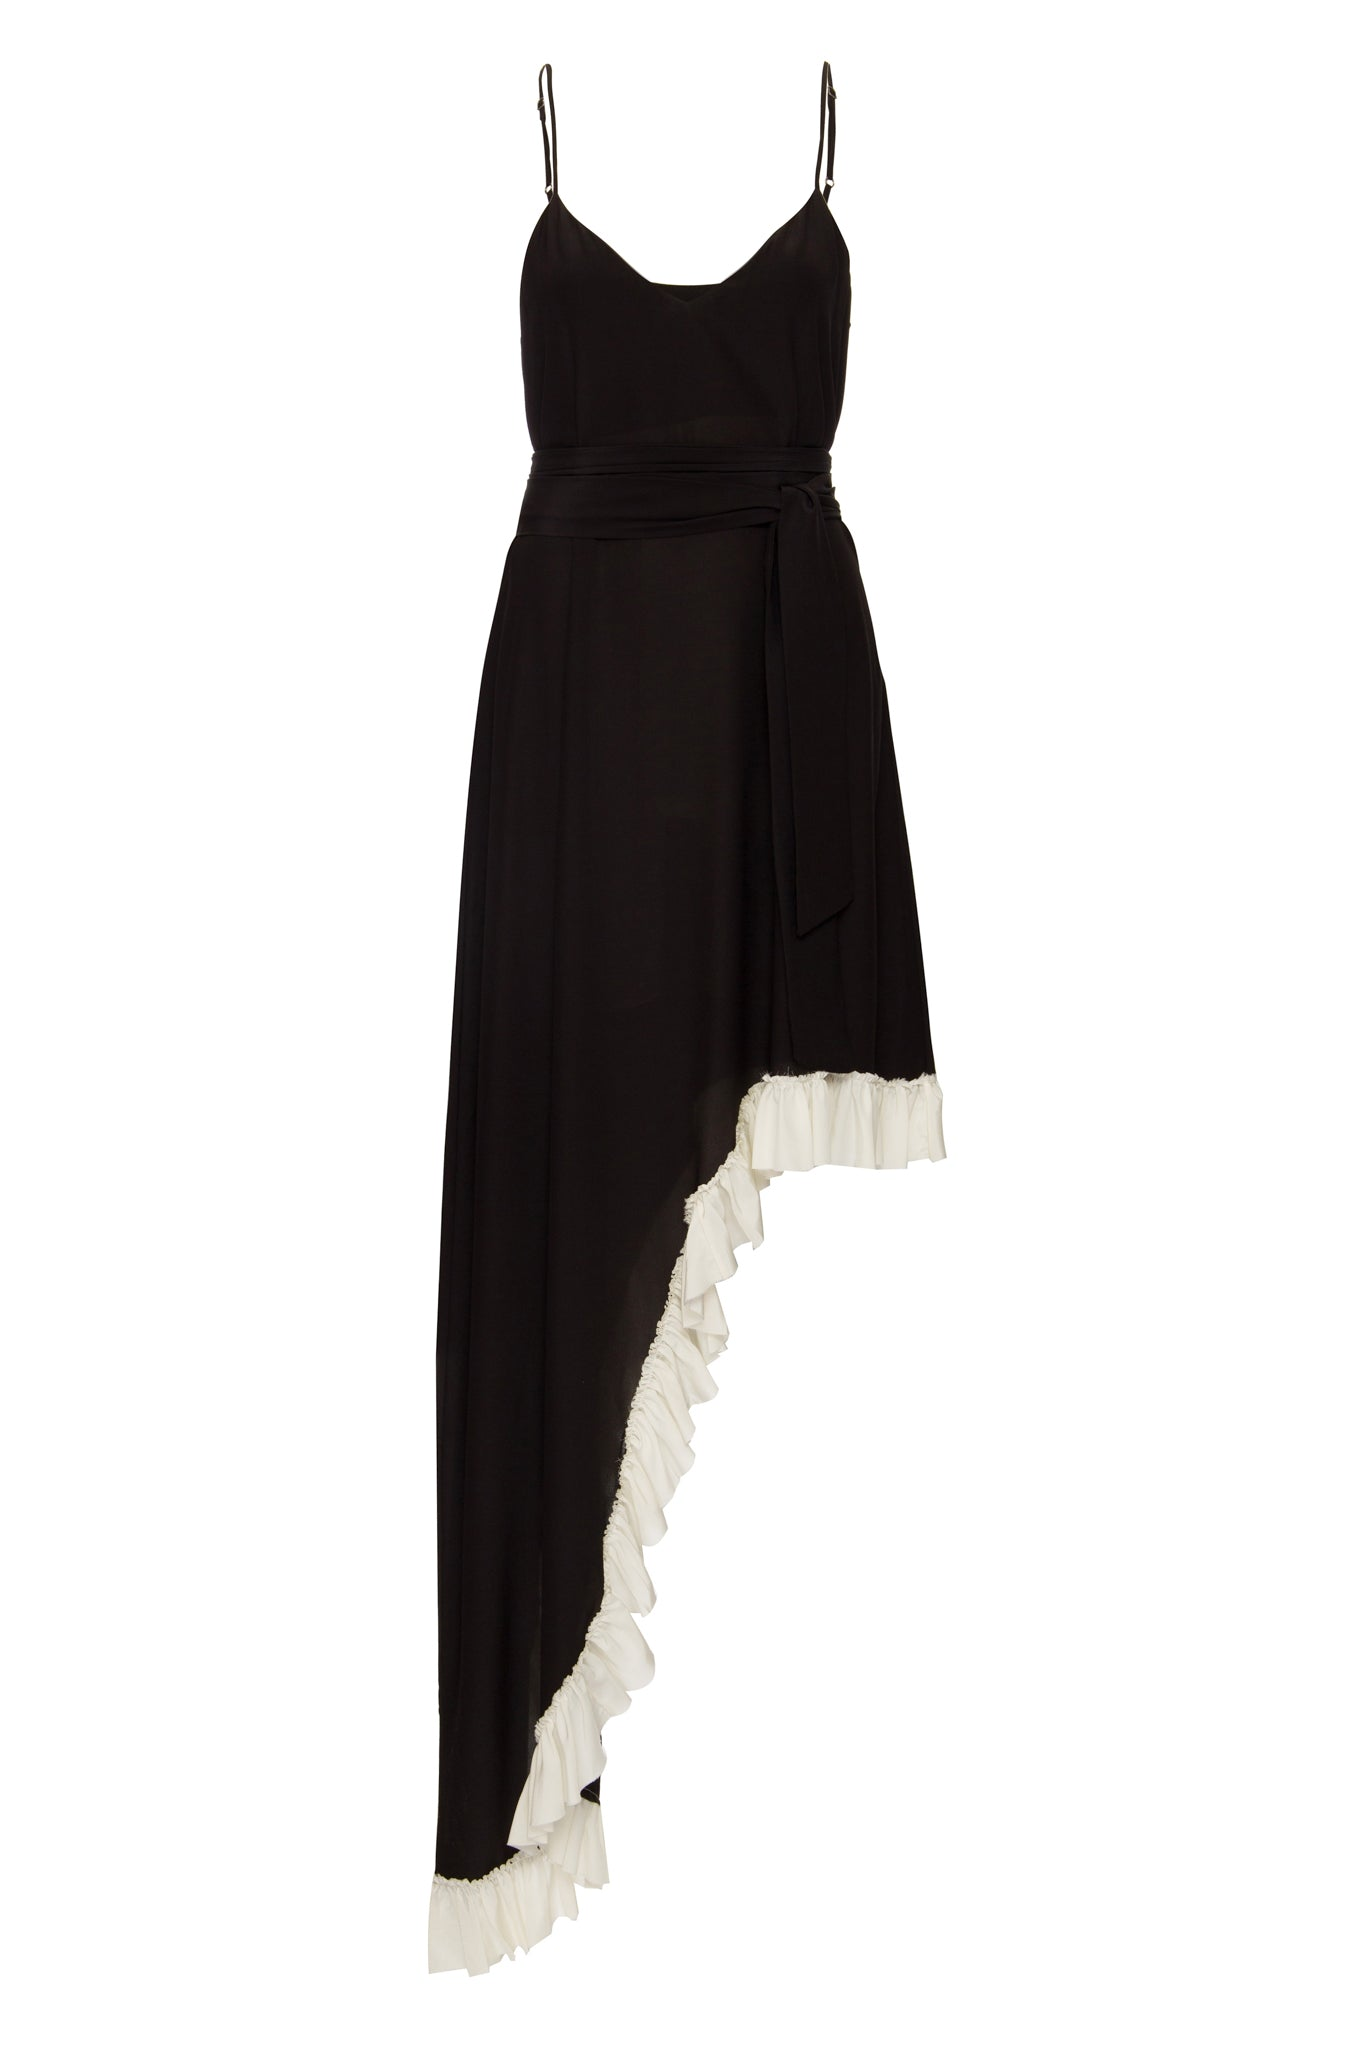 Black and White Gale Dress